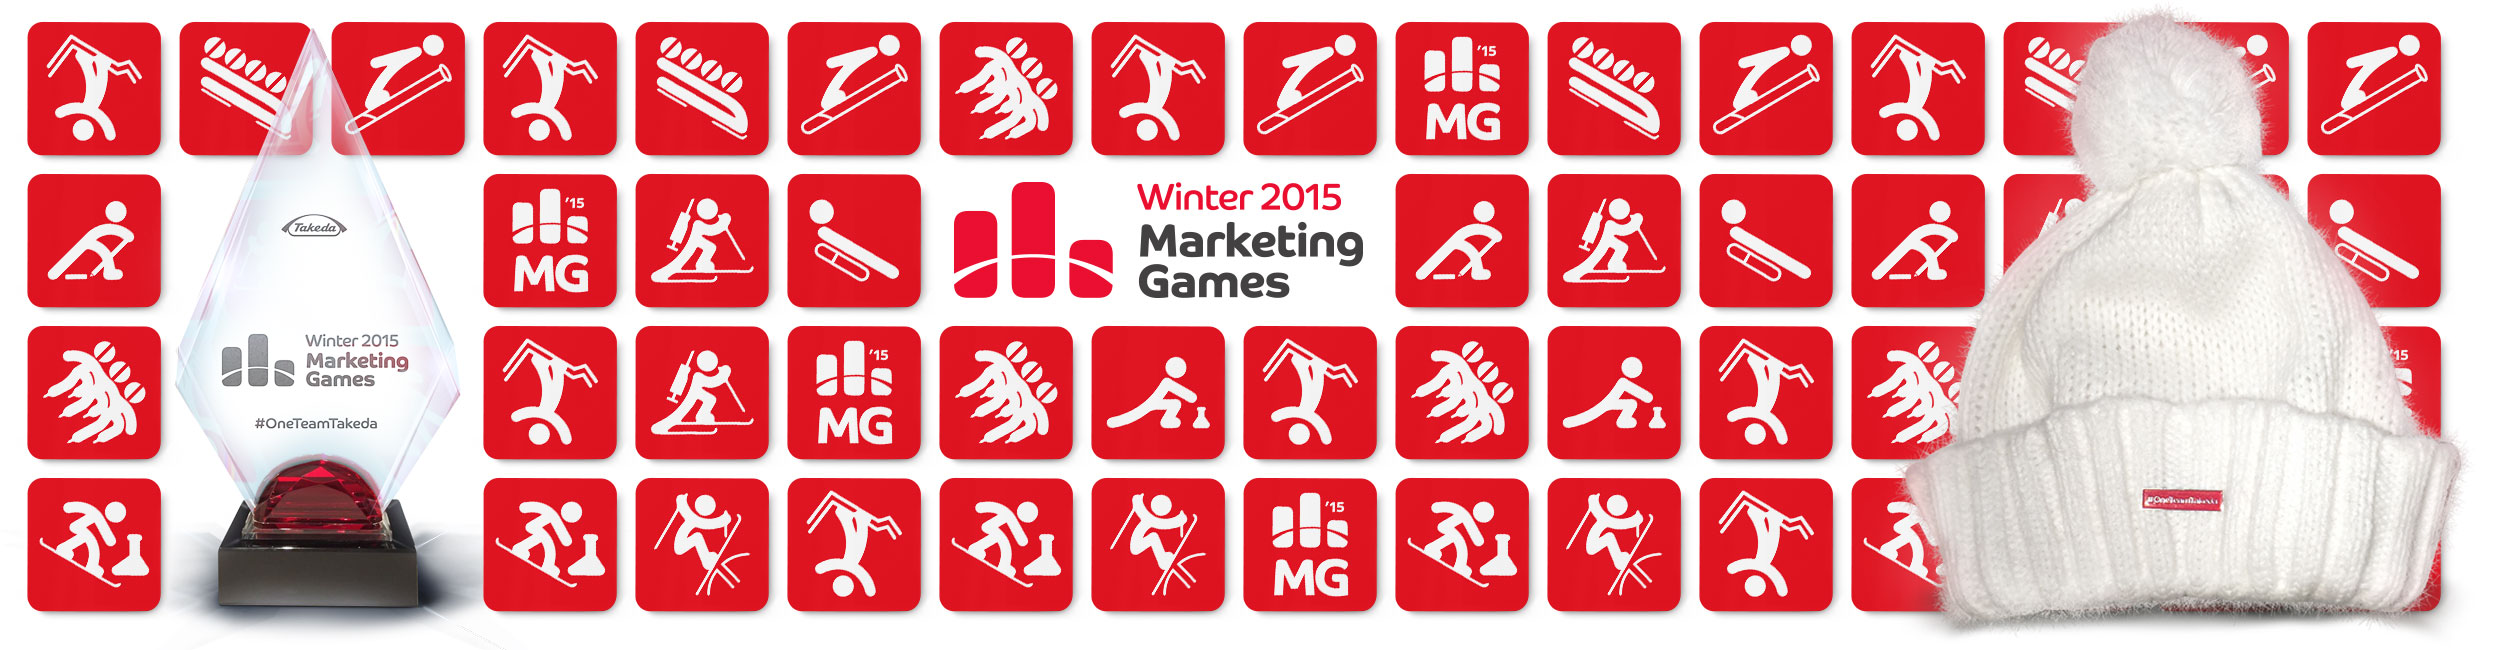 Winter Marketing Games 2015